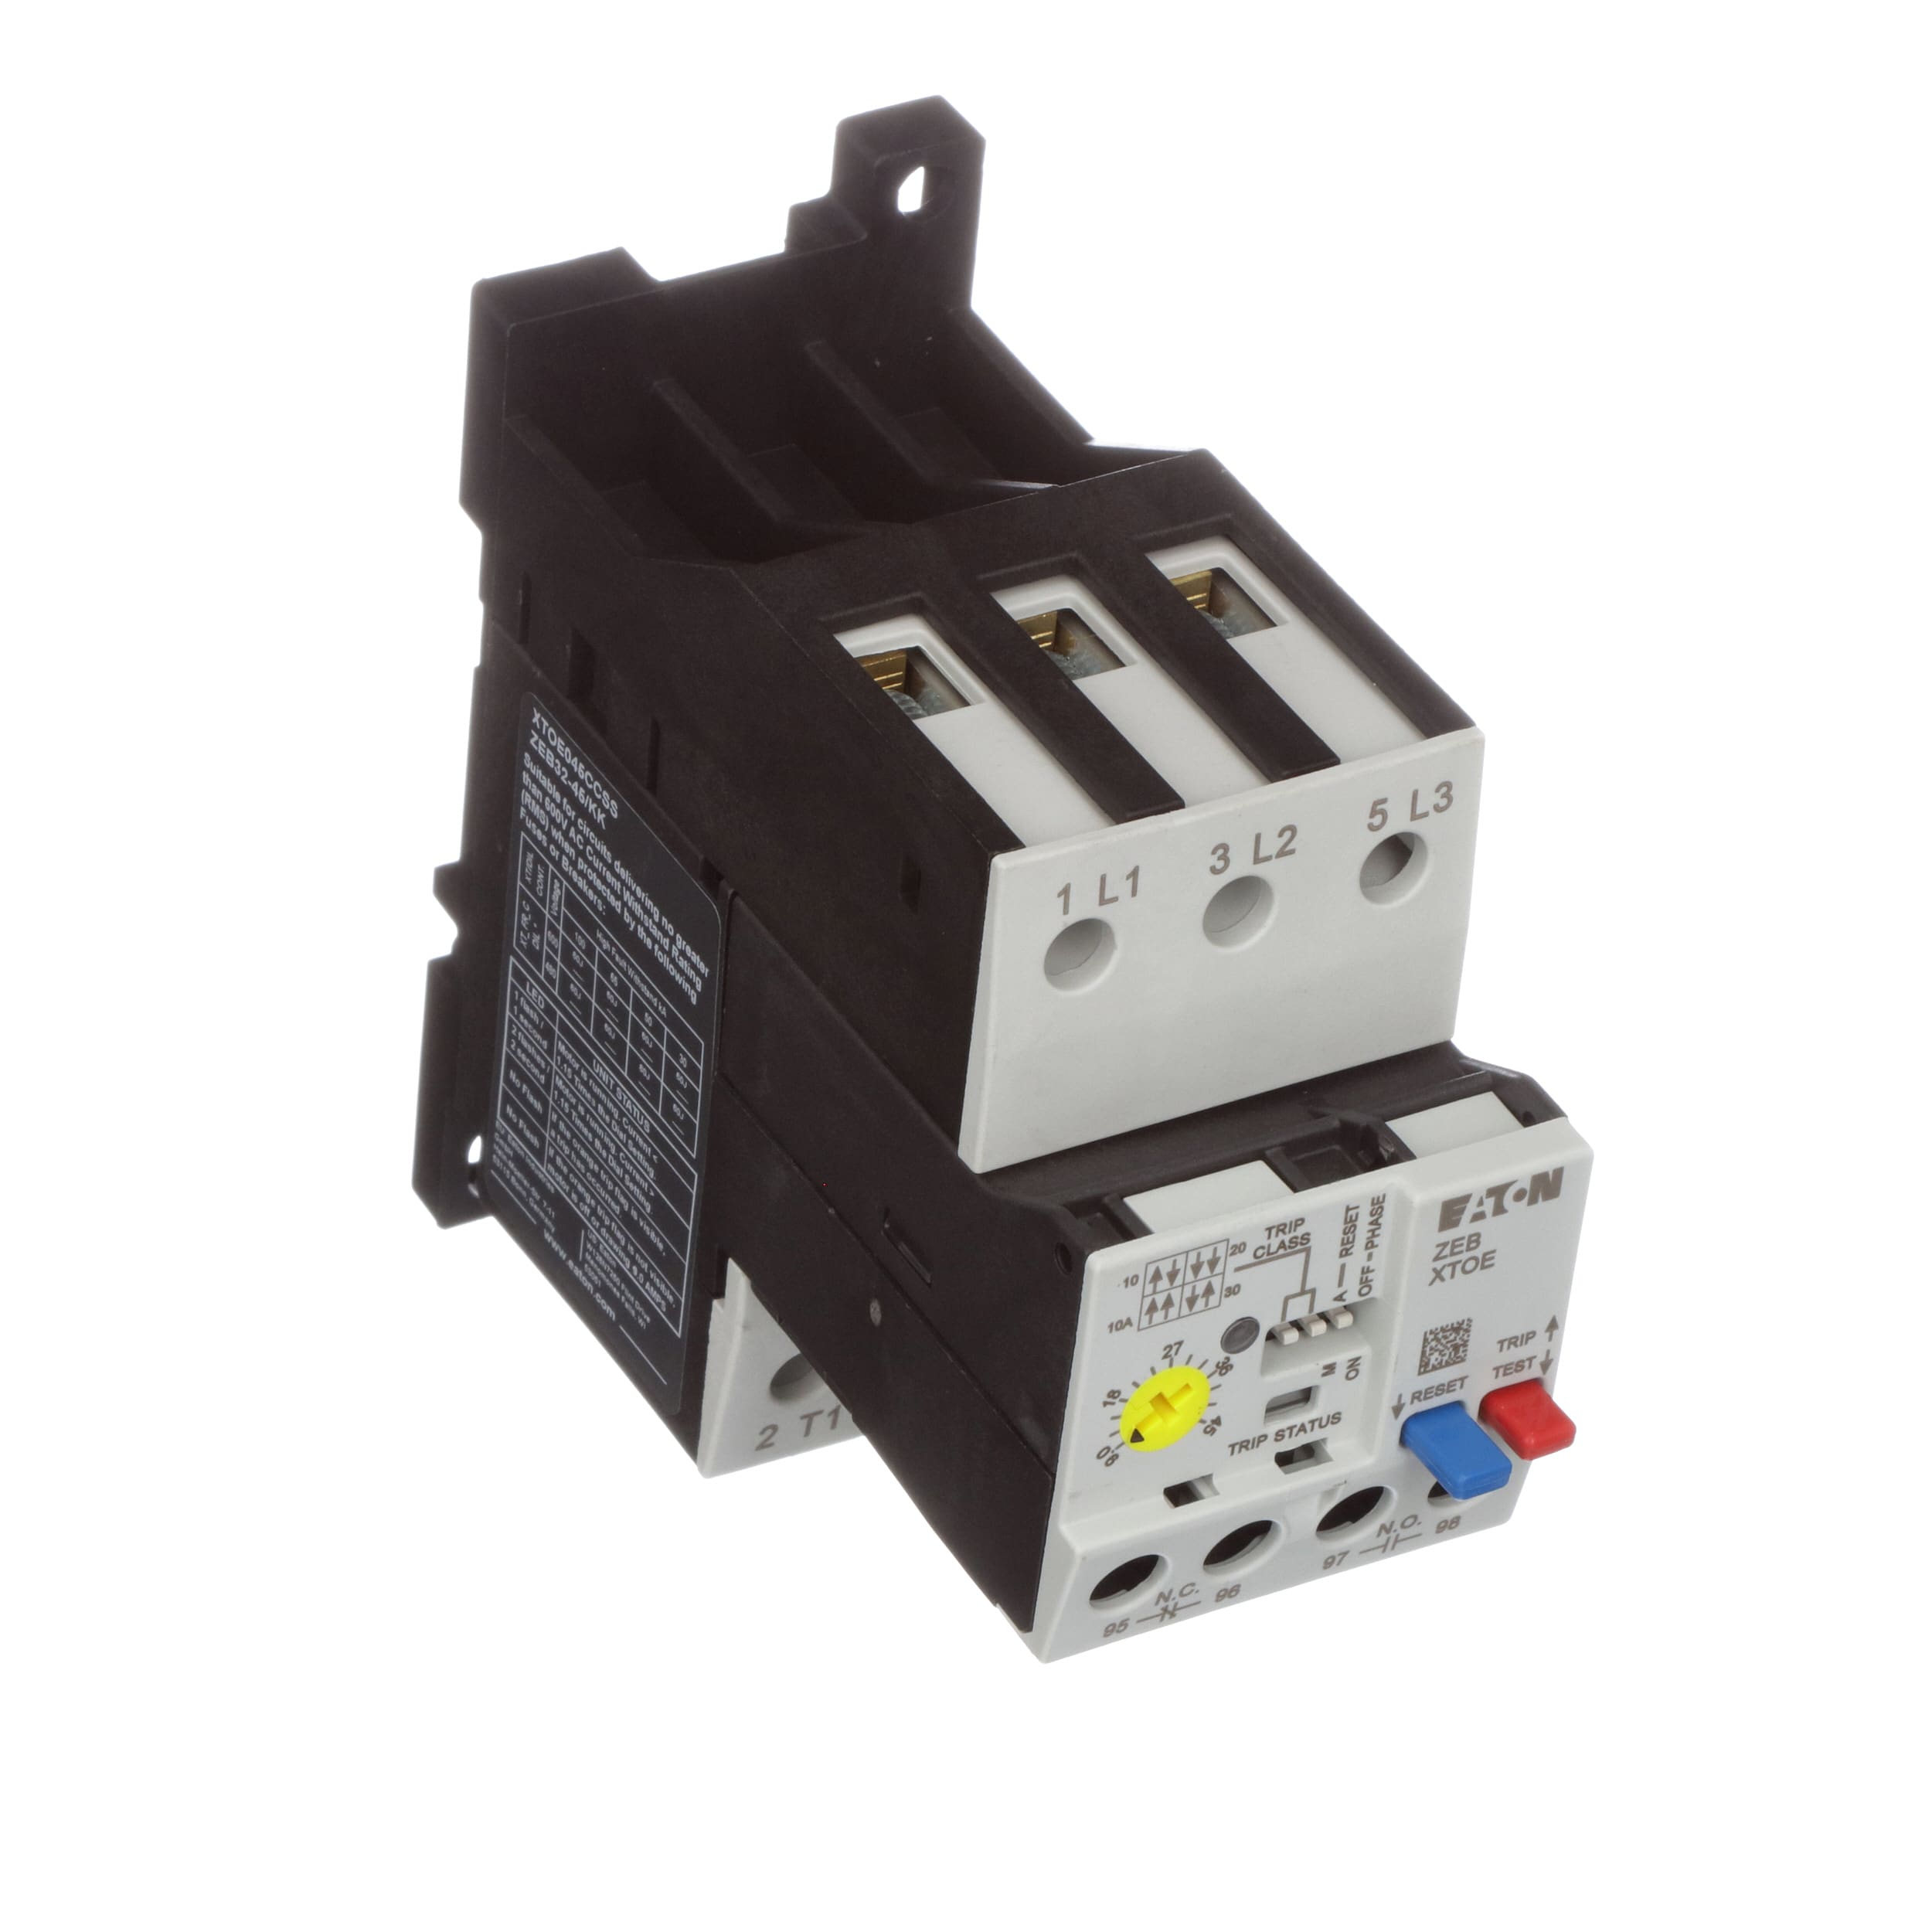 Eaton Cutler Hammer Xtoe045ccss Electronic Overload Relay Electrical Wiring Diagram Also Mag Ic Contactor With Xtoe 9 45a Iec Stand Alone Allied Electronics Automation